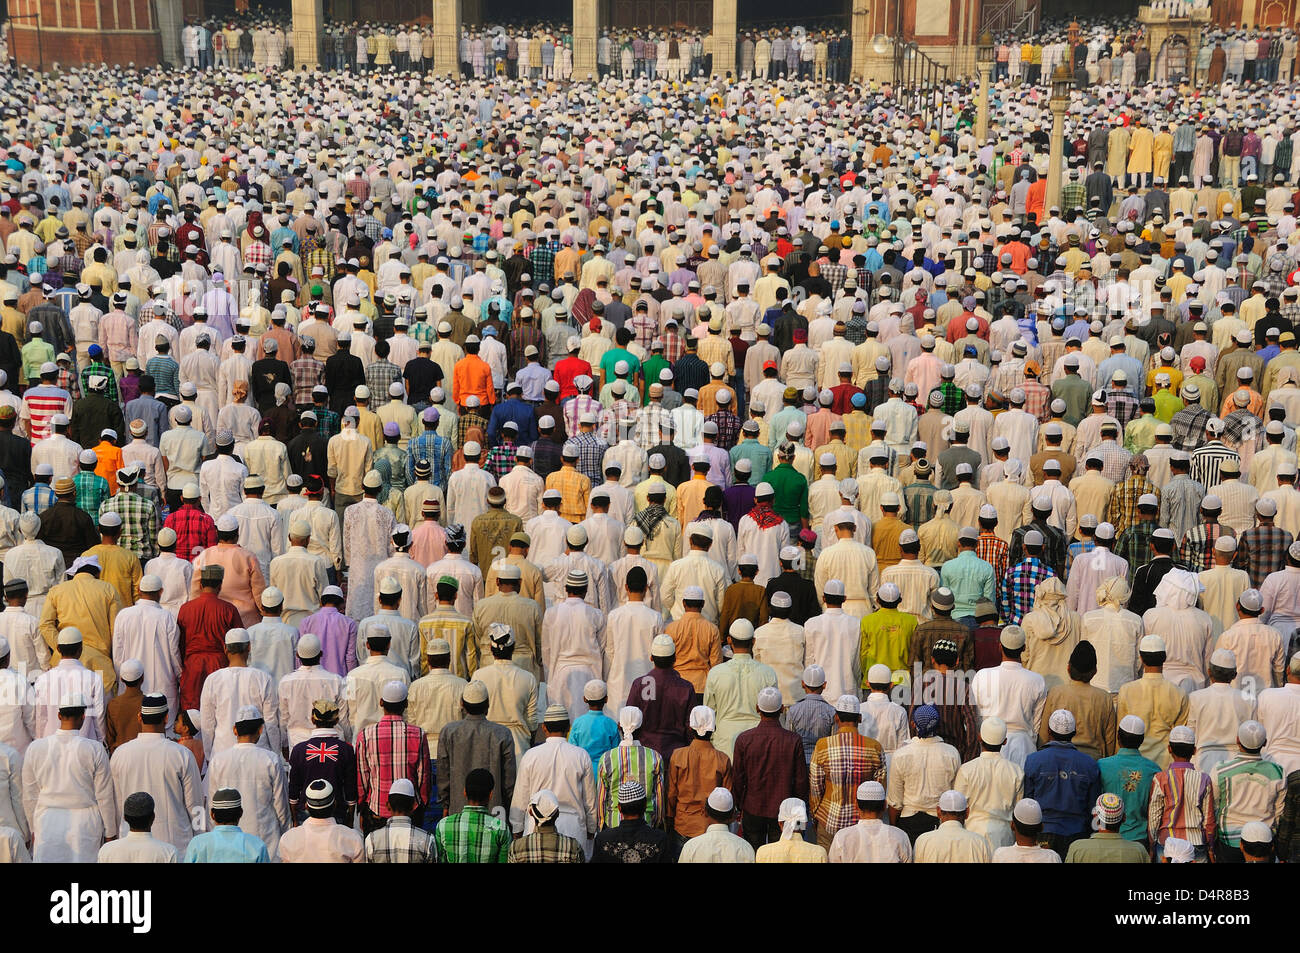 Thousands of Muslim people praying inside and outside of the Mosque to celebrate end of Ramadan. - Stock Image